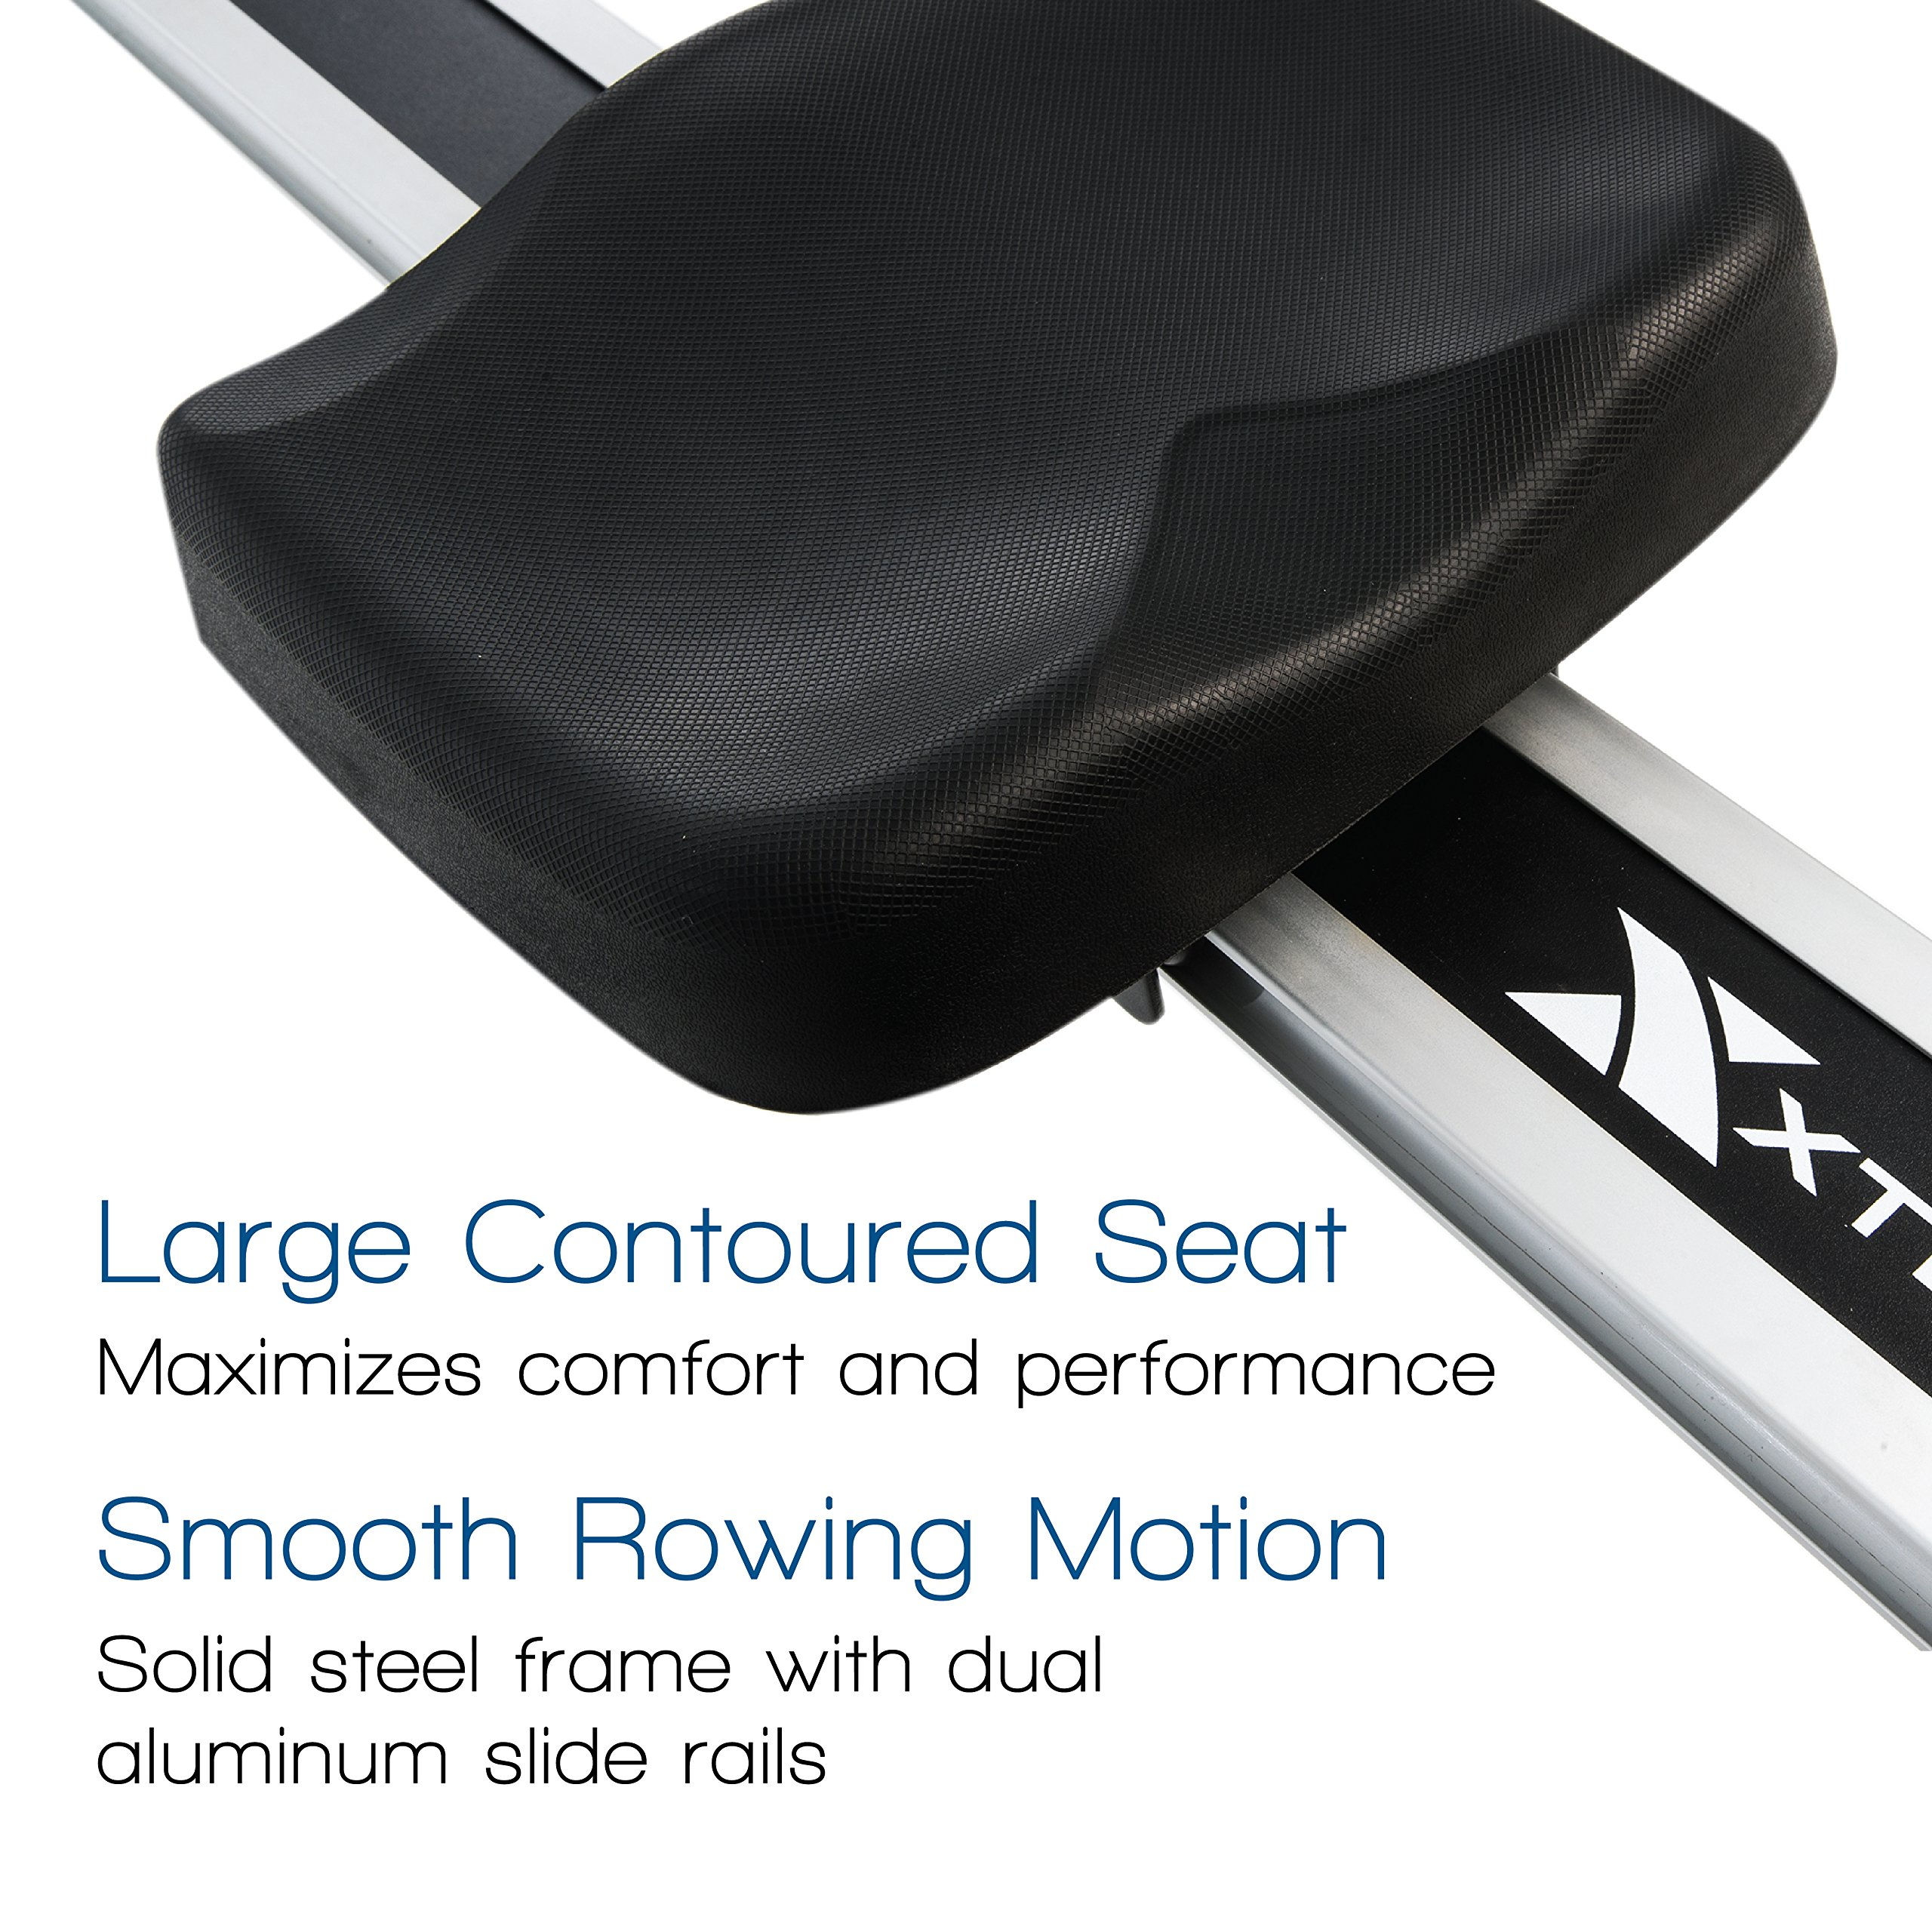 XTERRA Fitness ERG600W Water Rower by XTERRA Fitness (Image #3)